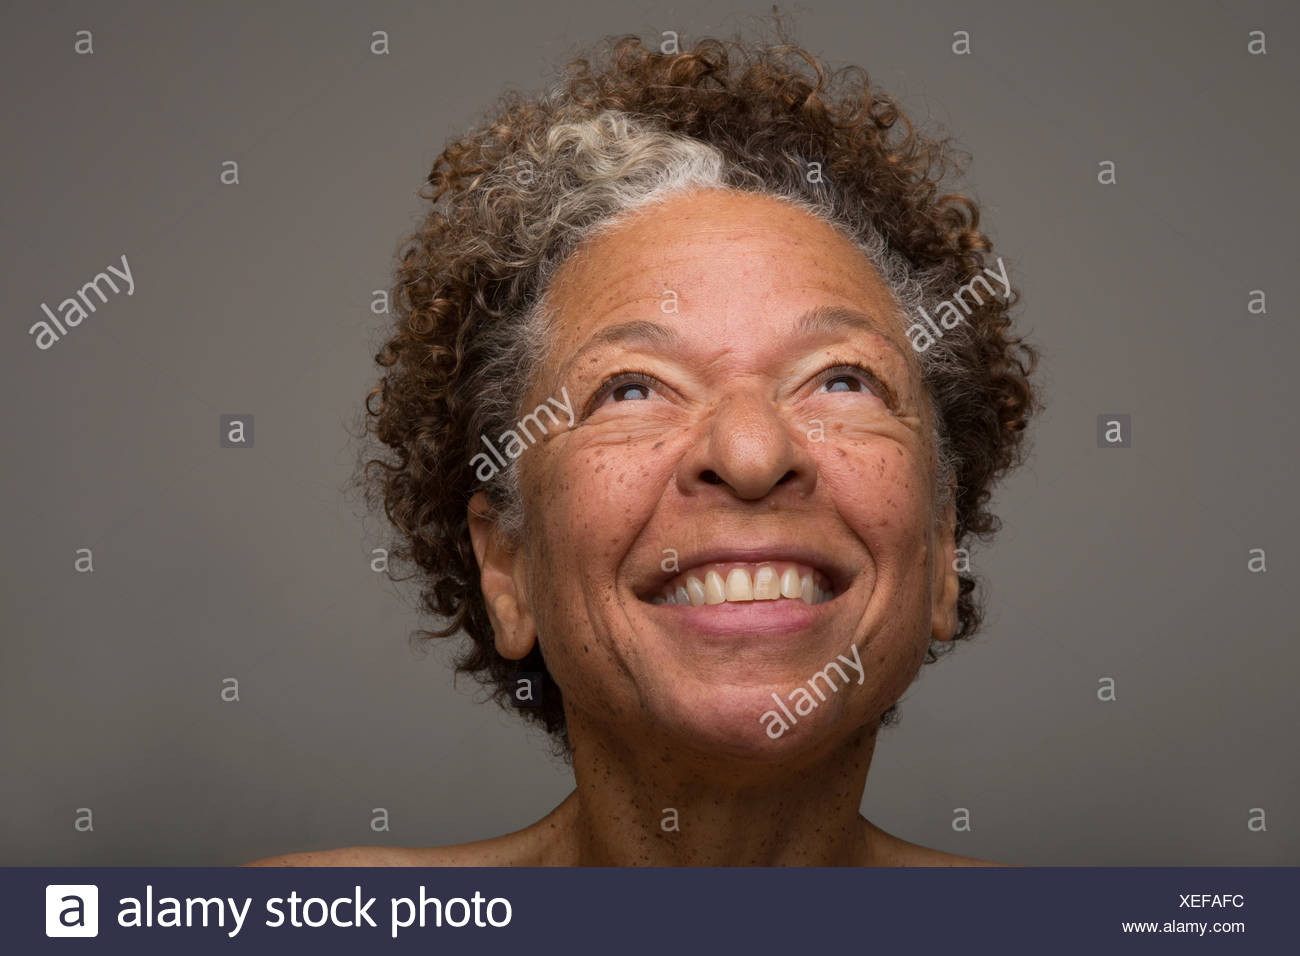 Close up portrait of smiling senior woman Photo Stock